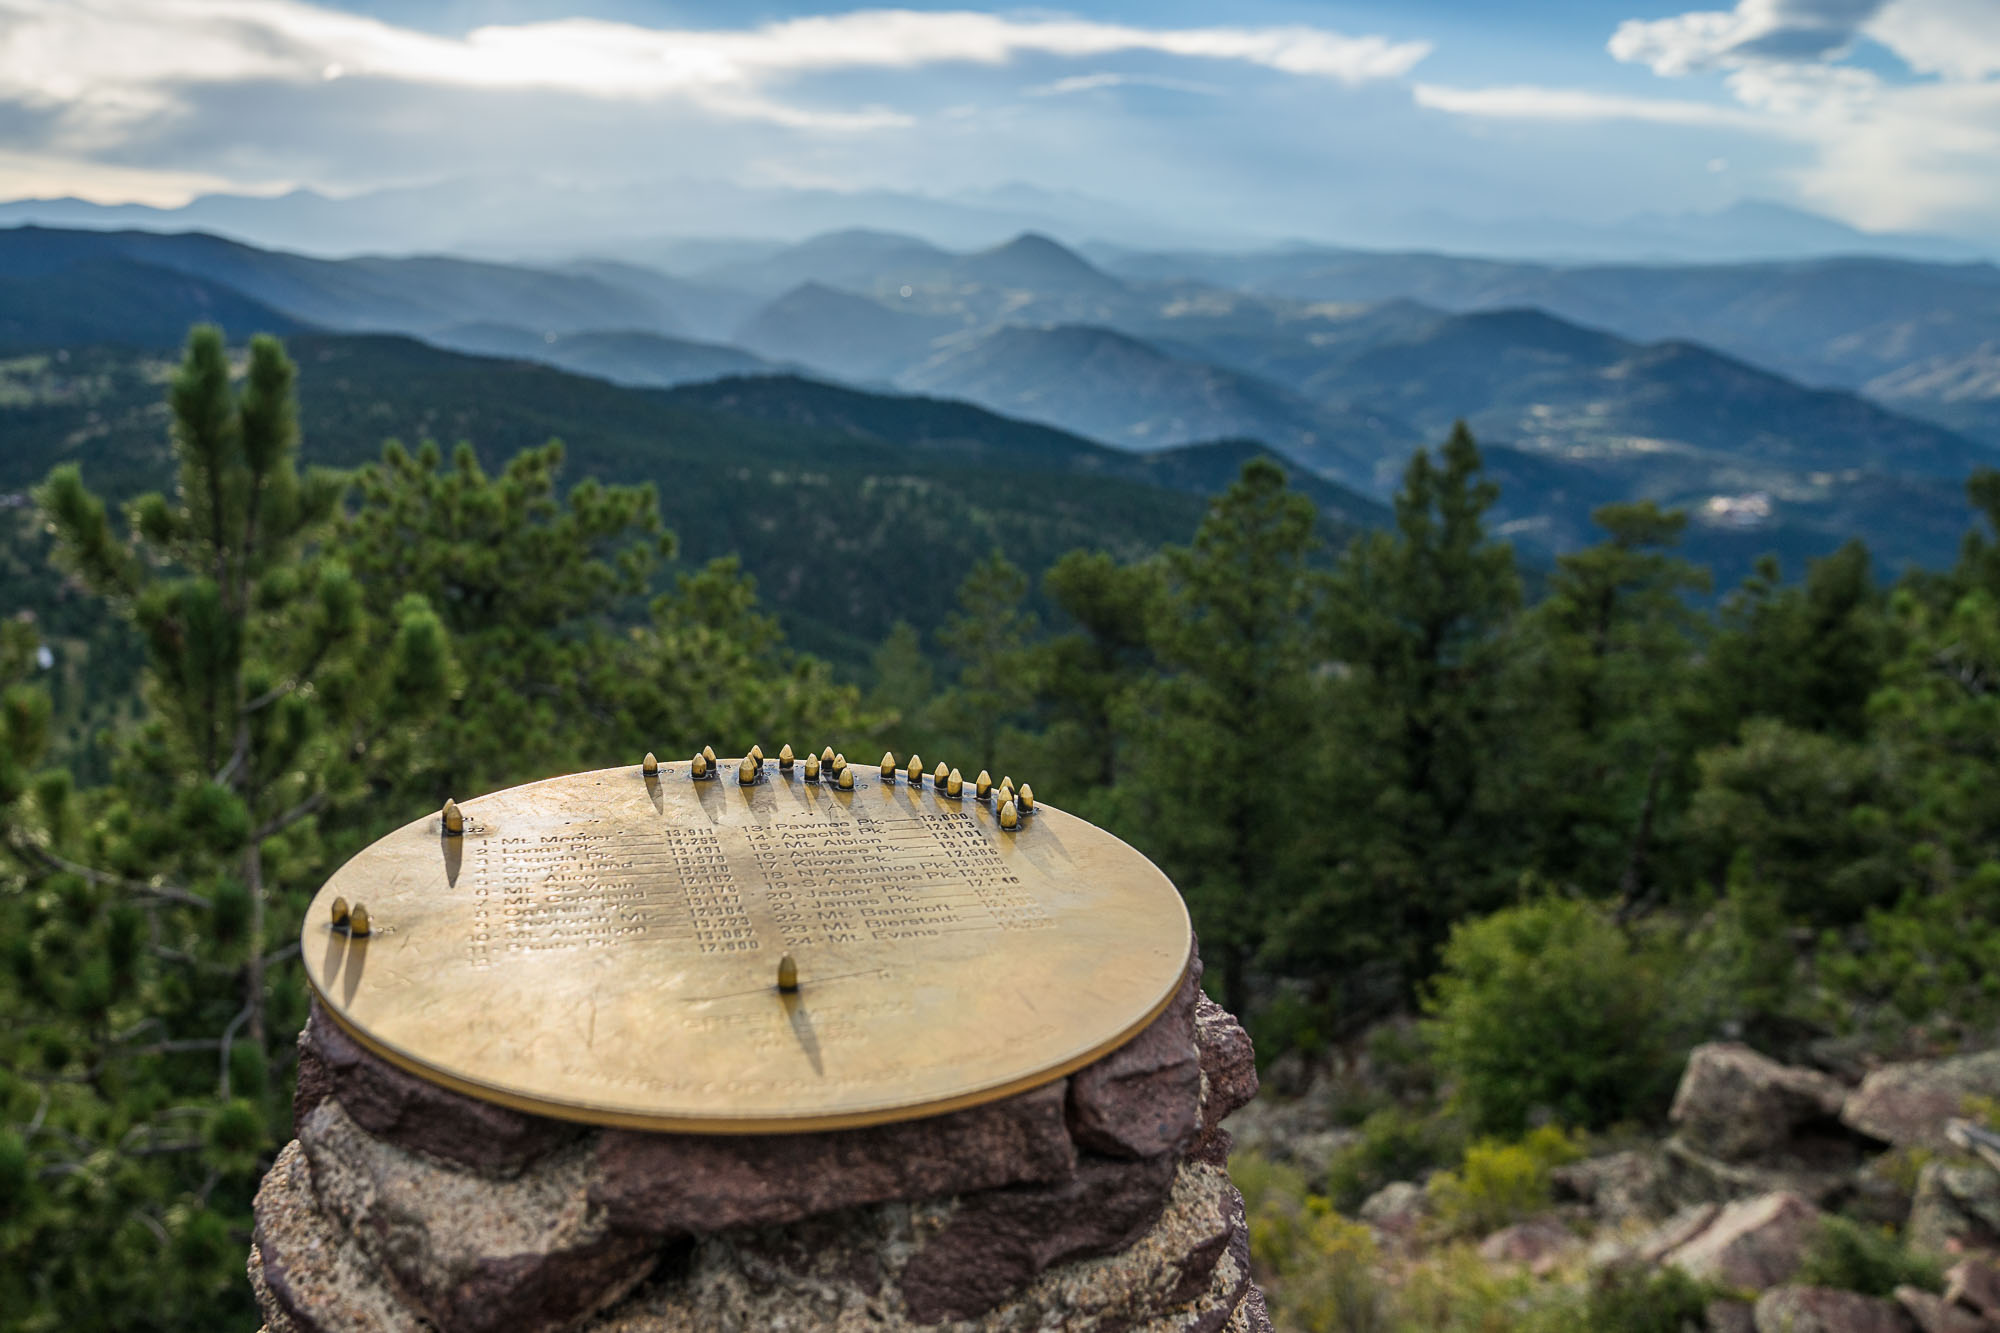 a view of an object from the top of green mountain in boulder for dirt road travels